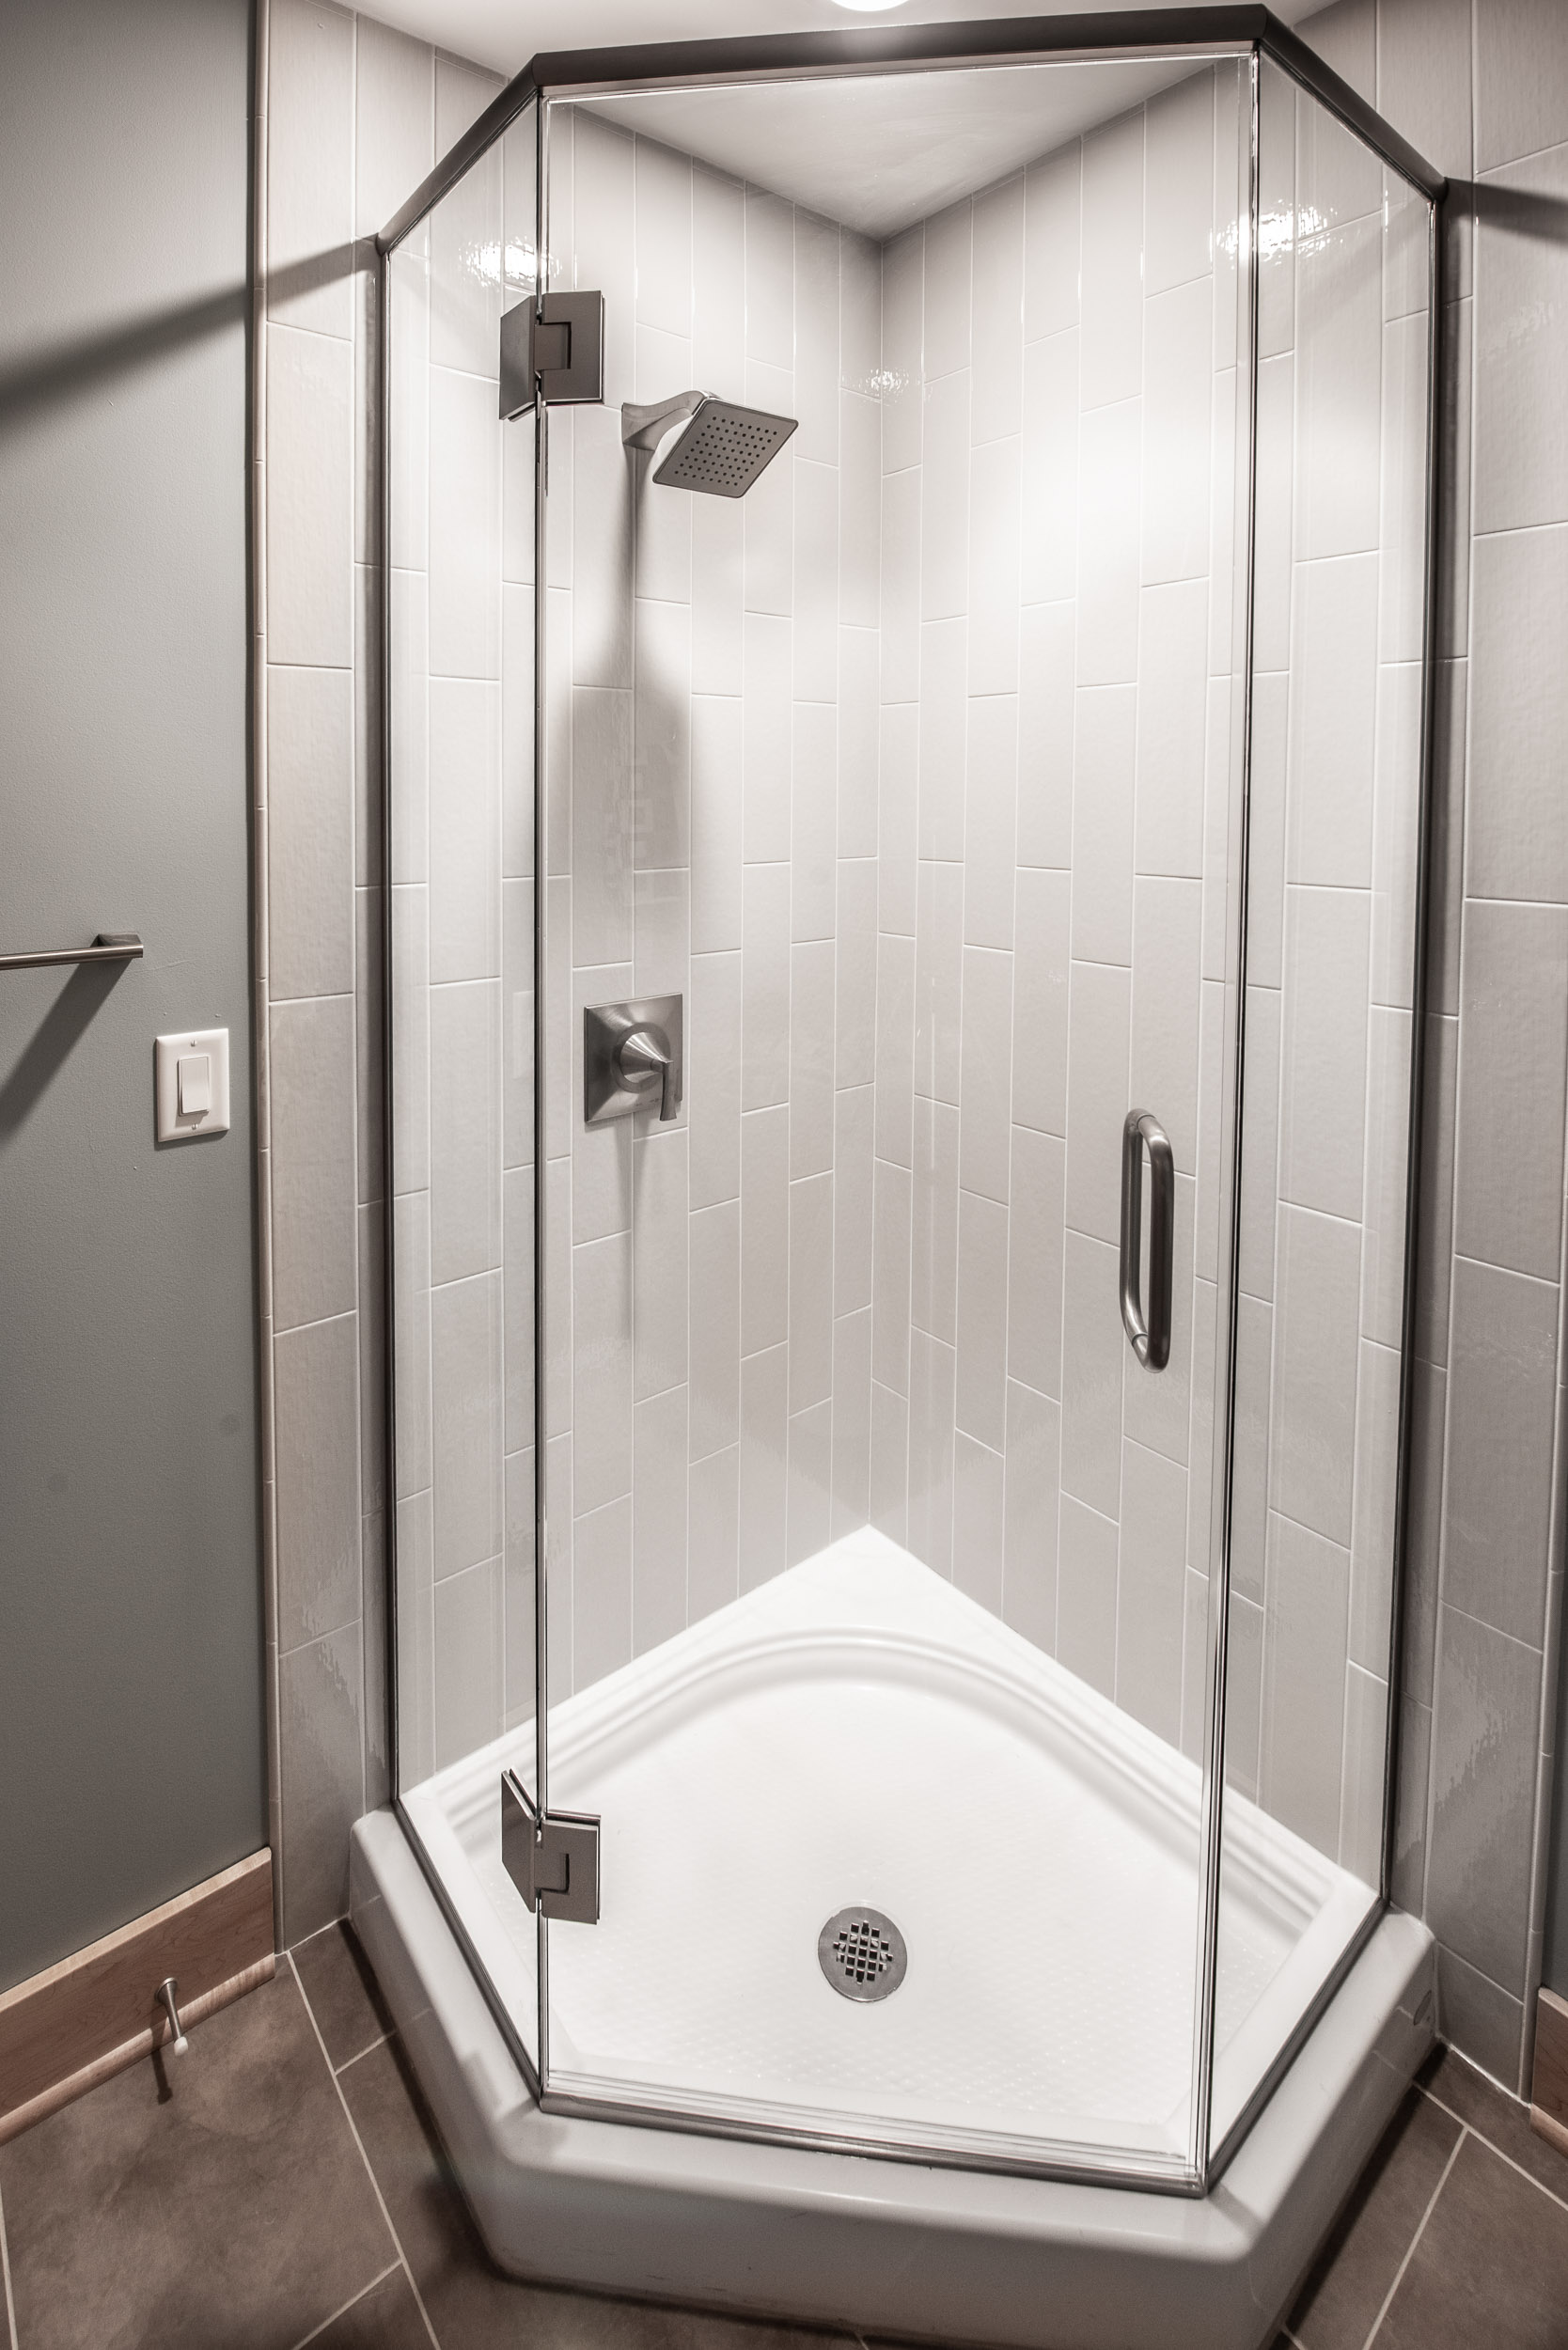 Condominium Bathroom Remodeling Madison Wisconsin-12.jpg